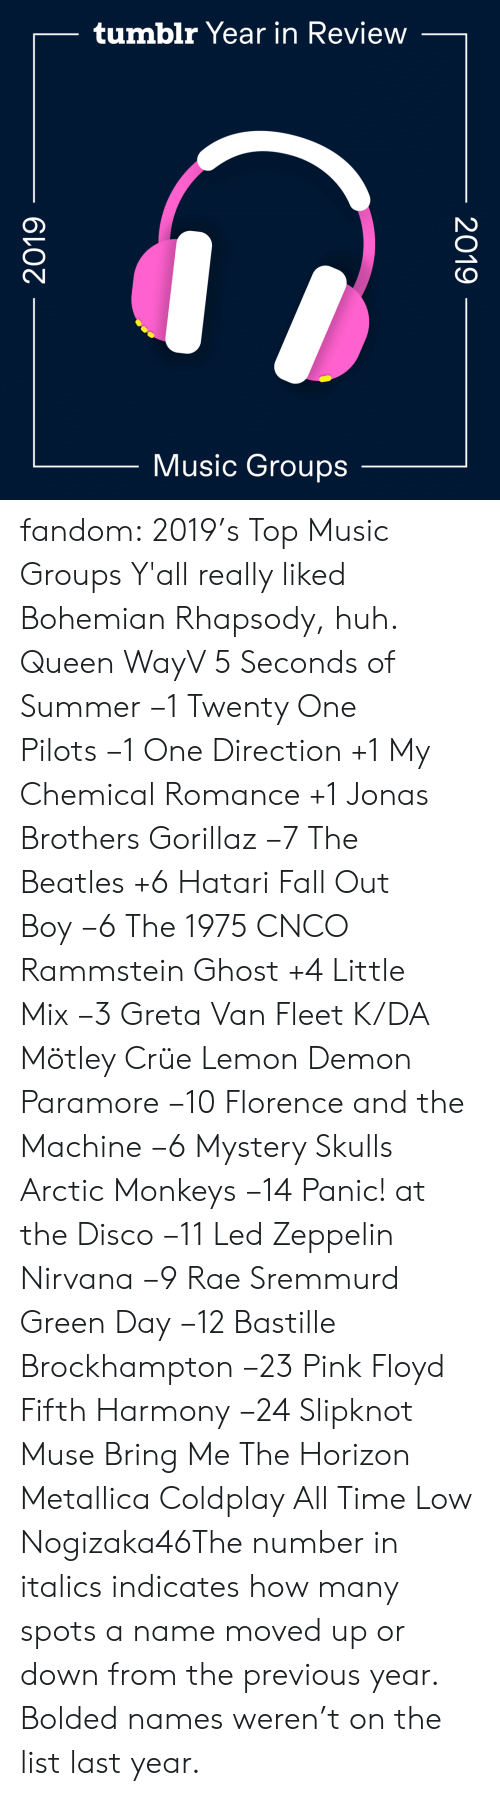 Rhapsody: tumblr Year in Review  Music Groups  2019  2019 fandom:  2019's Top Music Groups  Y'all really liked Bohemian Rhapsody, huh.  Queen  WayV  5 Seconds of Summer −1  Twenty One Pilots −1  One Direction +1  My Chemical Romance +1  Jonas Brothers  Gorillaz −7  The Beatles +6  Hatari  Fall Out Boy −6  The 1975  CNCO  Rammstein  Ghost +4  Little Mix −3  Greta Van Fleet  K/DA  Mötley Crüe  Lemon Demon  Paramore −10  Florence and the Machine −6  Mystery Skulls  Arctic Monkeys −14  Panic! at the Disco −11  Led Zeppelin   Nirvana −9  Rae Sremmurd  Green Day −12  Bastille  Brockhampton −23  Pink Floyd  Fifth Harmony −24  Slipknot  Muse  Bring Me The Horizon  Metallica  Coldplay  All Time Low  Nogizaka46The number in italics indicates how many spots a name moved up or down from the previous year. Bolded names weren't on the list last year.